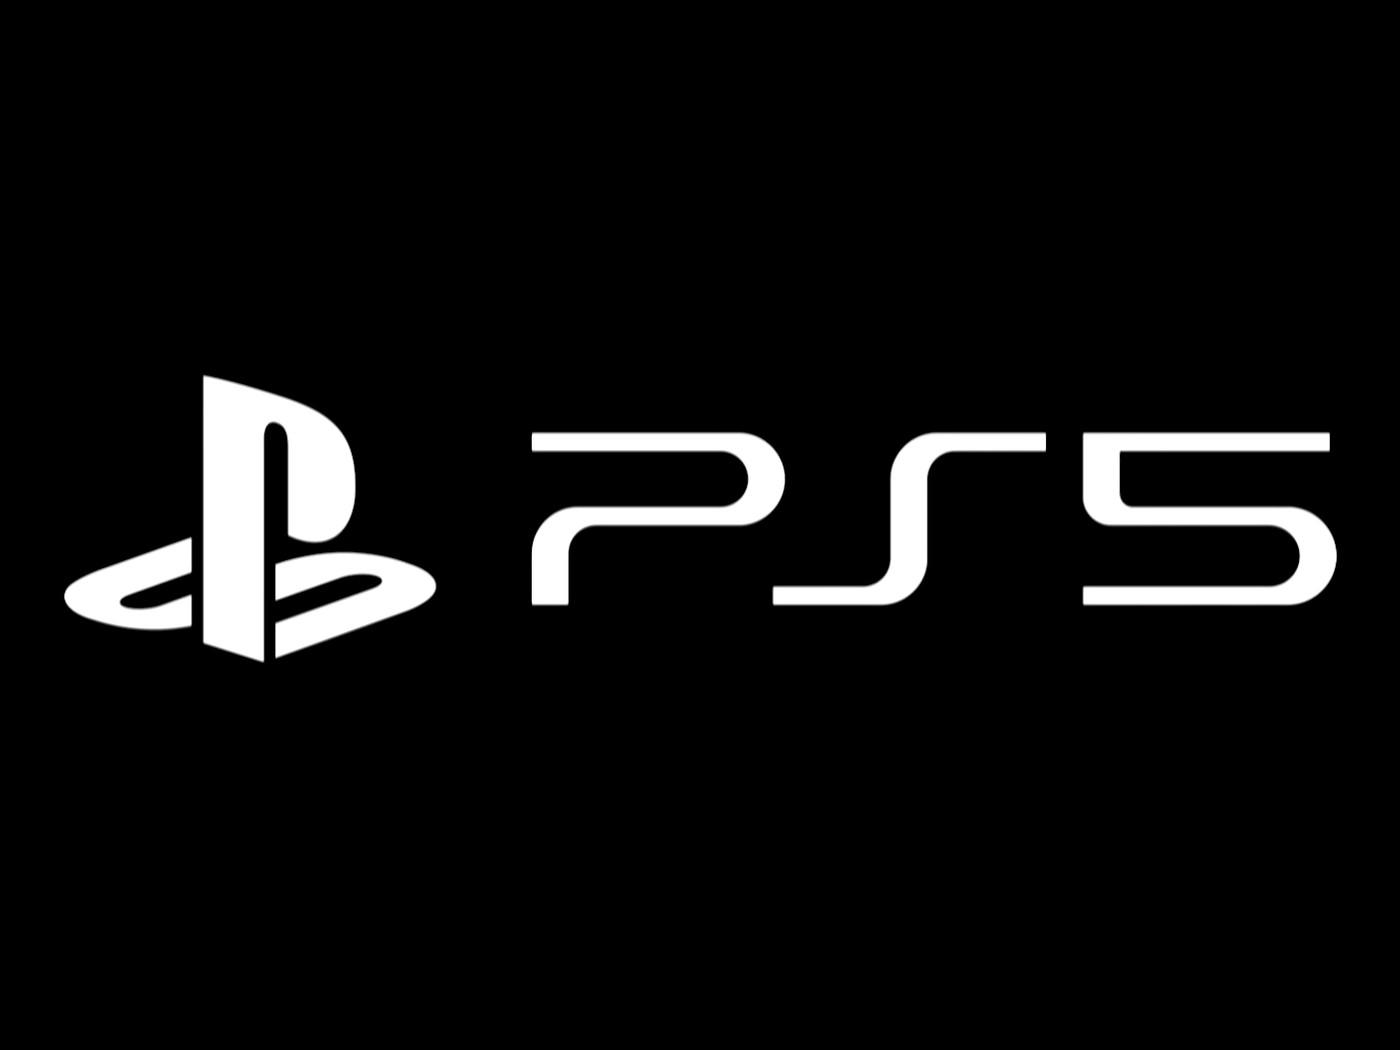 Sony reveals new PS5 logo, which looks familiar - Polygon